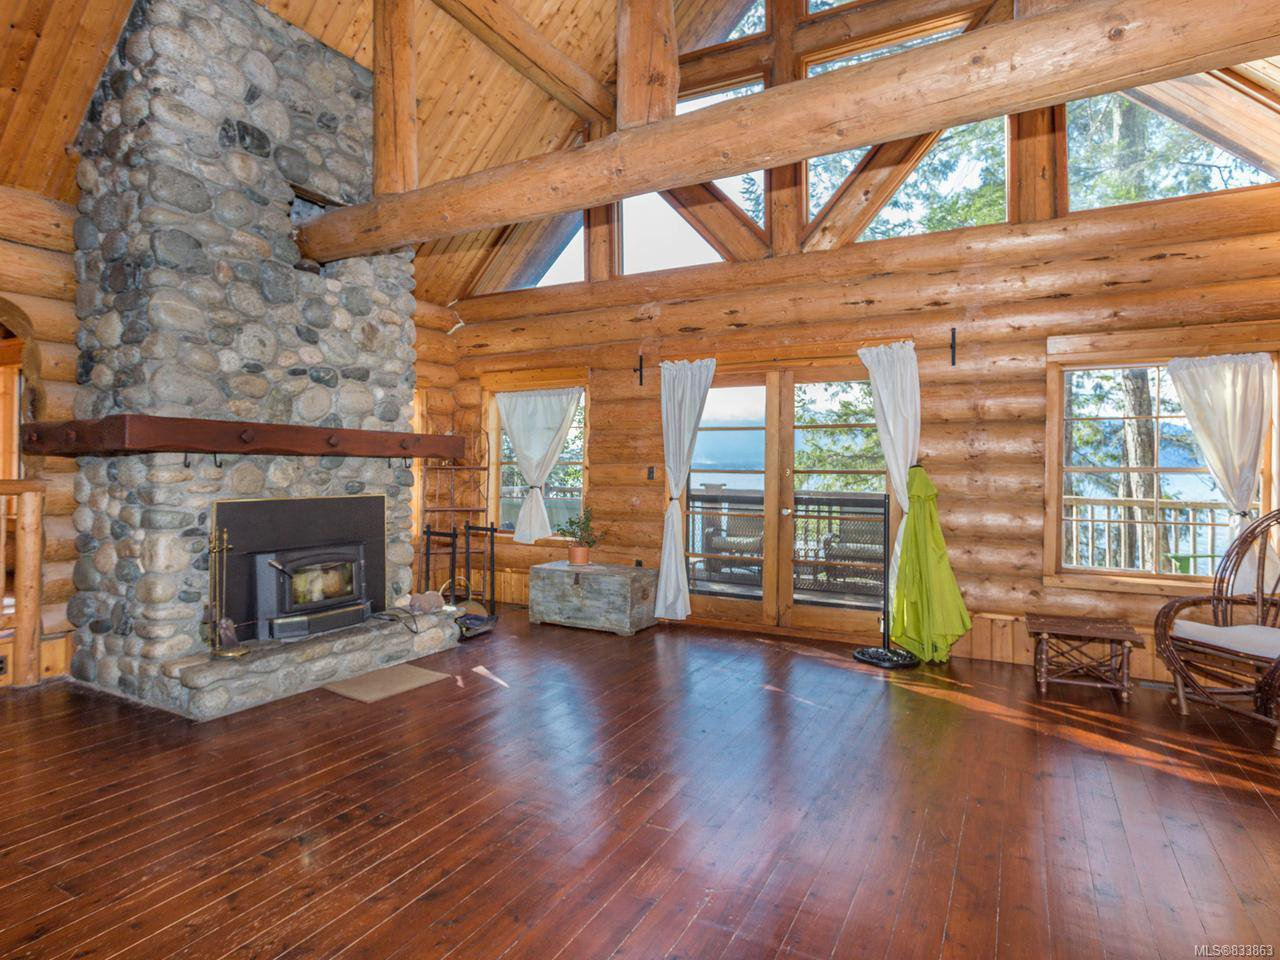 Photo 8: Photos: 255 Forbes Dr in THETIS ISLAND: Isl Thetis Island House for sale (Islands)  : MLS®# 833863